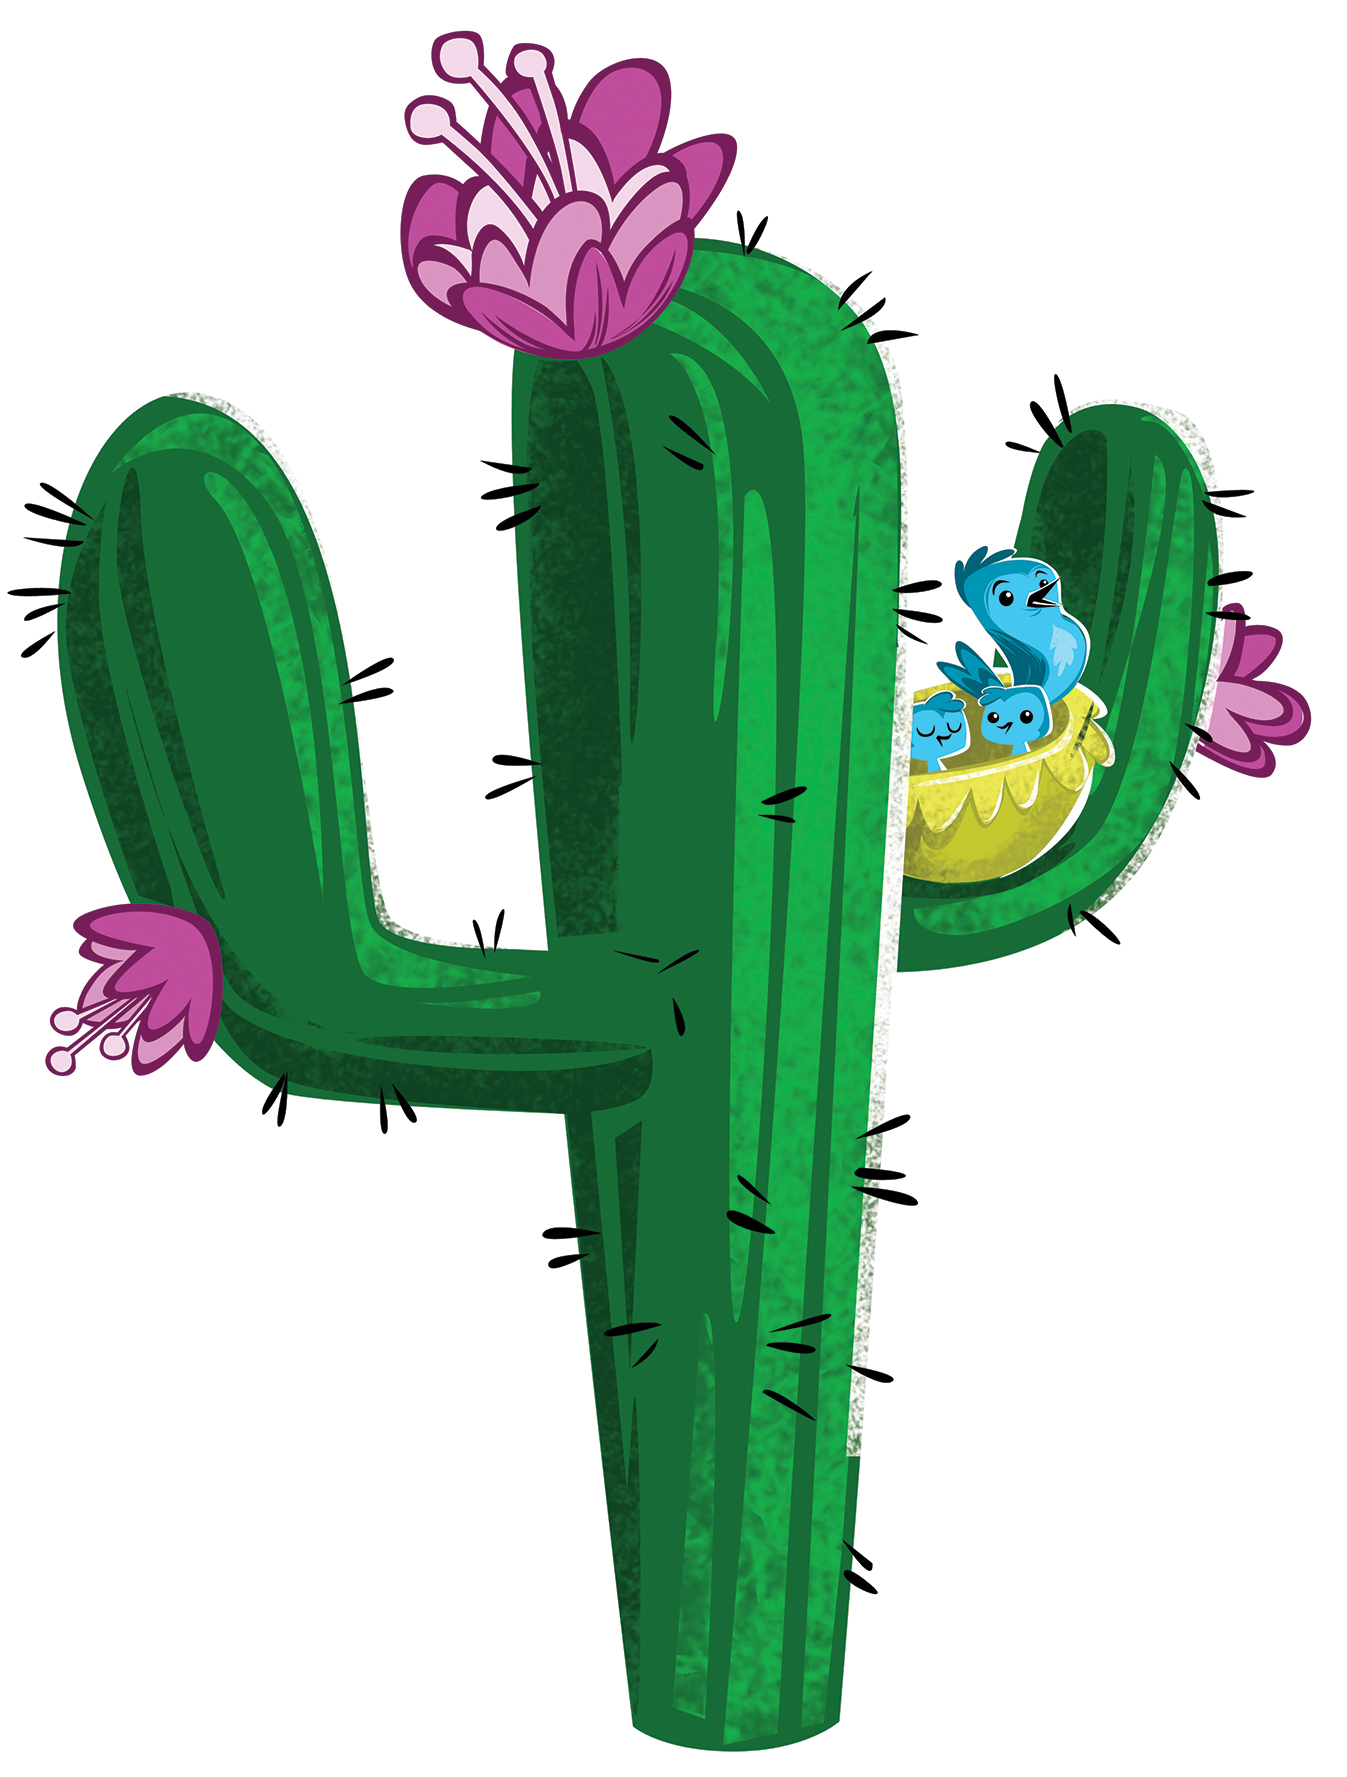 Clipart cactus free clipart free library Free Cactus Cliparts, Download Free Clip Art, Free Clip Art on ... clipart free library